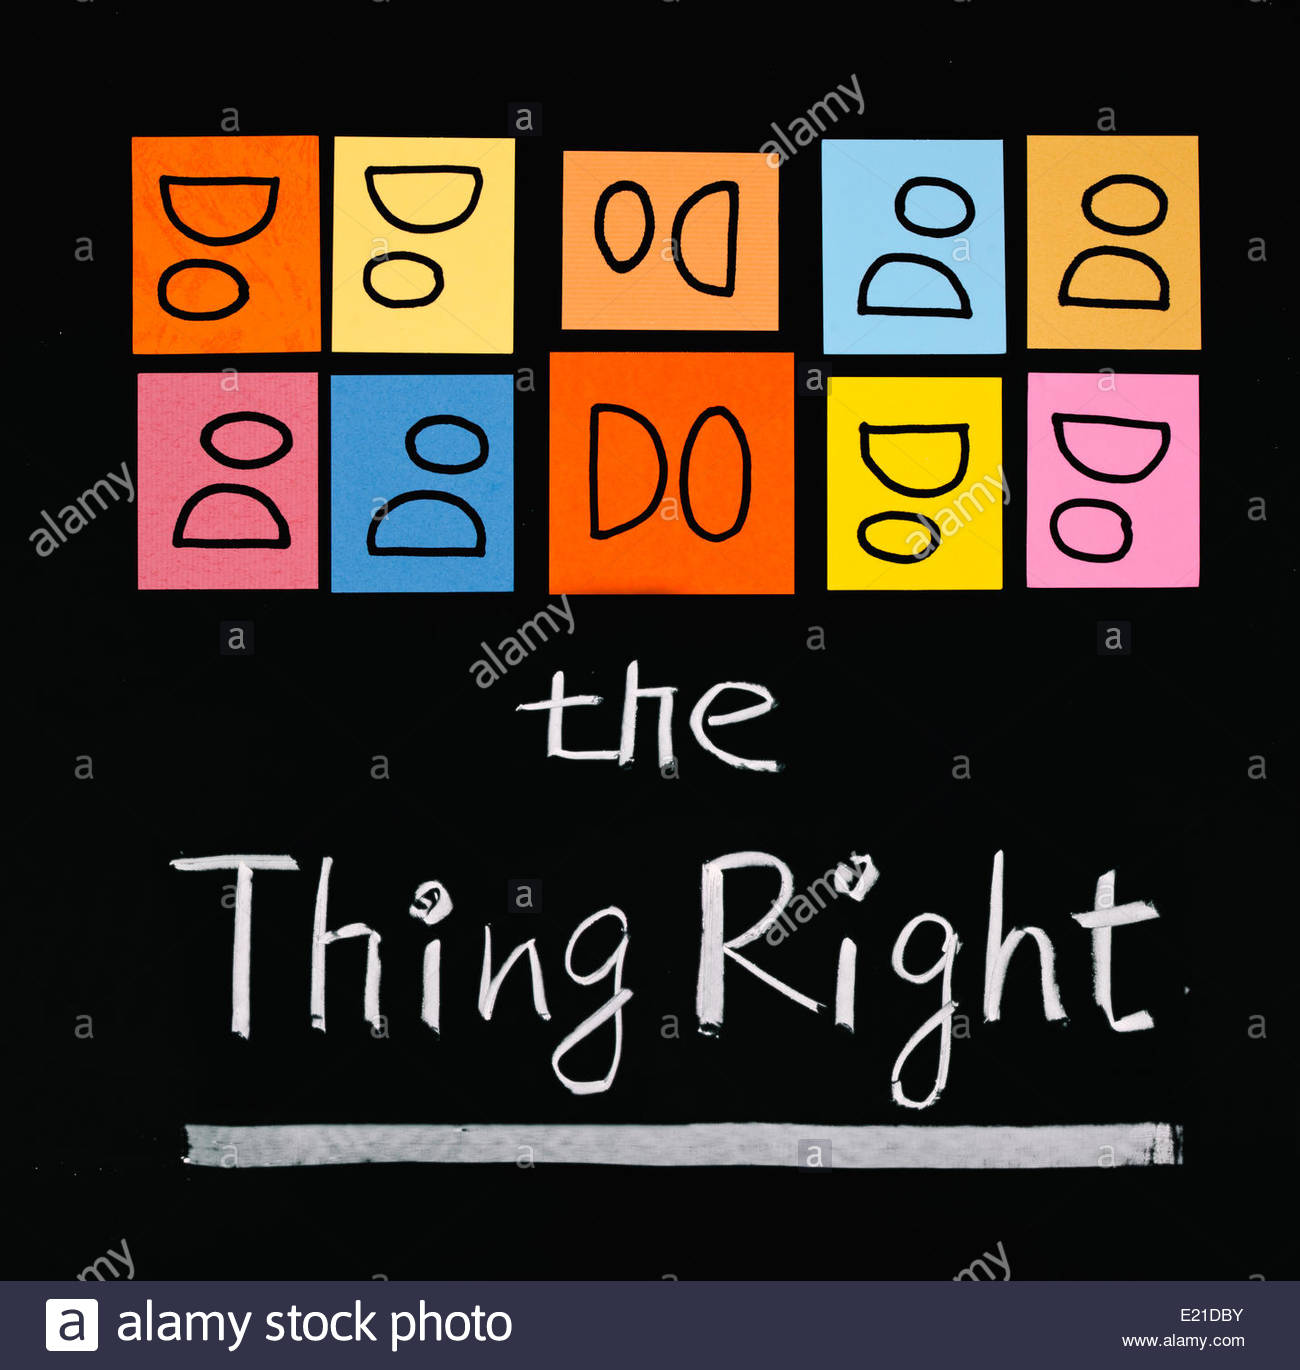 Do The Right Thing Stock Photos & Do The Right Thing Stock Images.